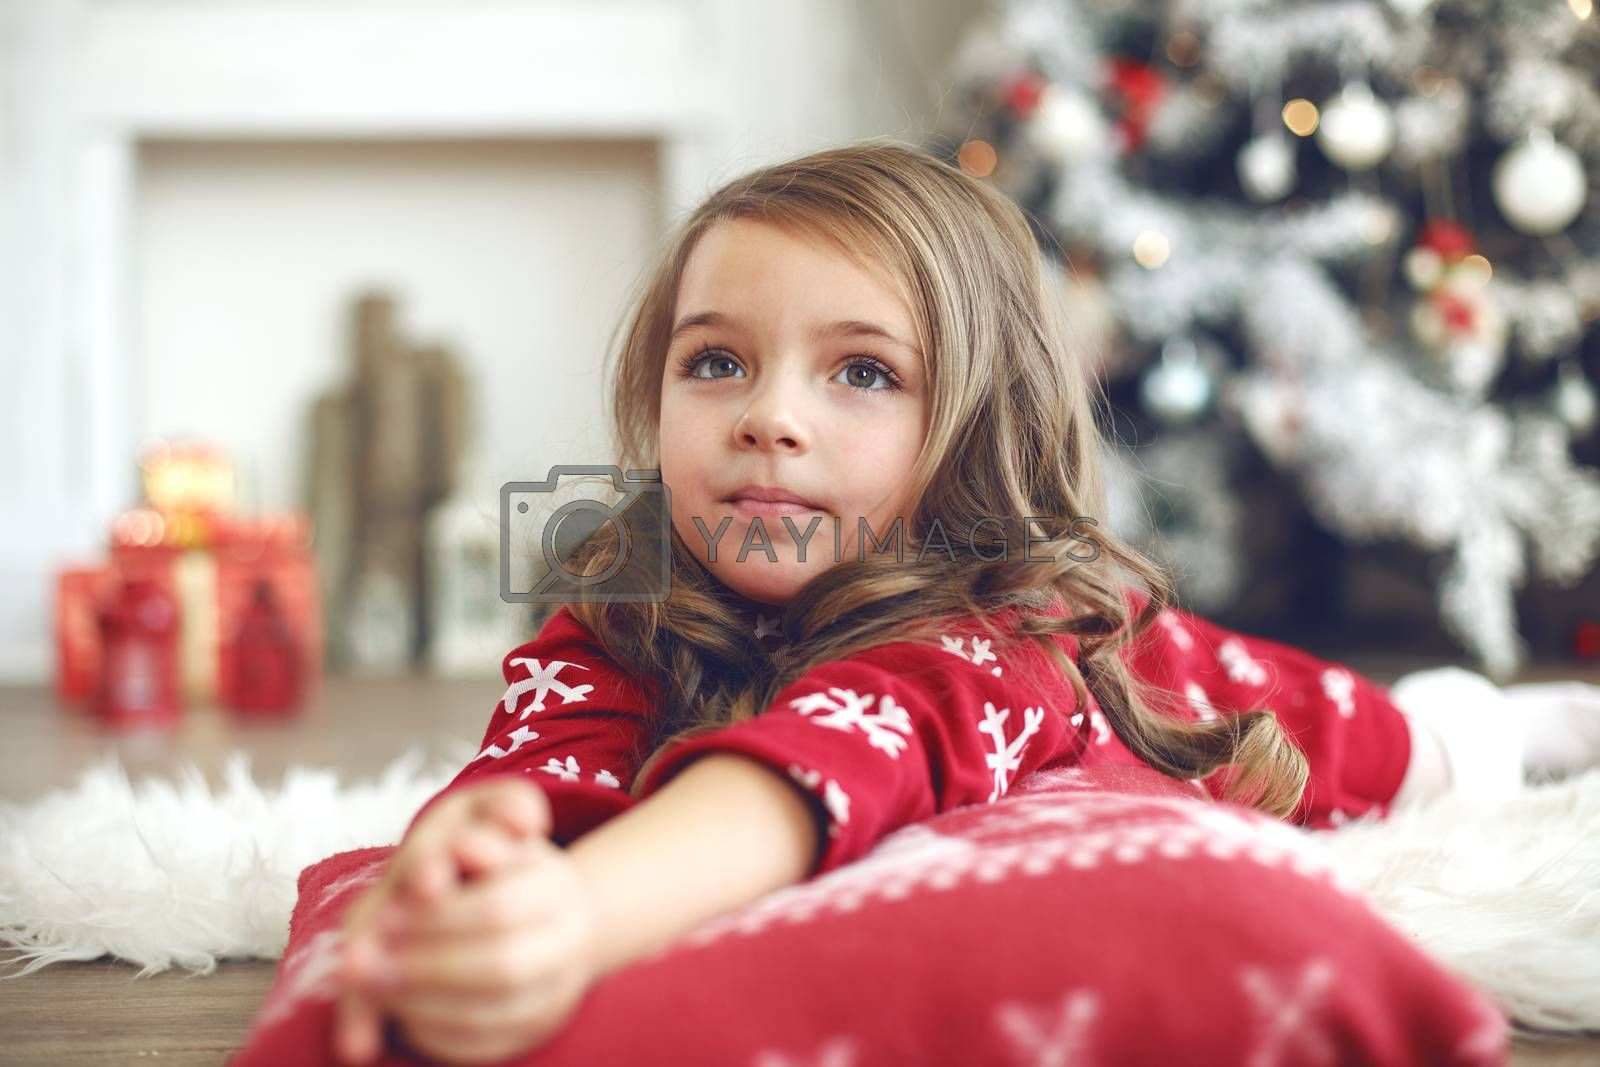 5 years old little girl laying down on soft cushion near Christmas tree at home